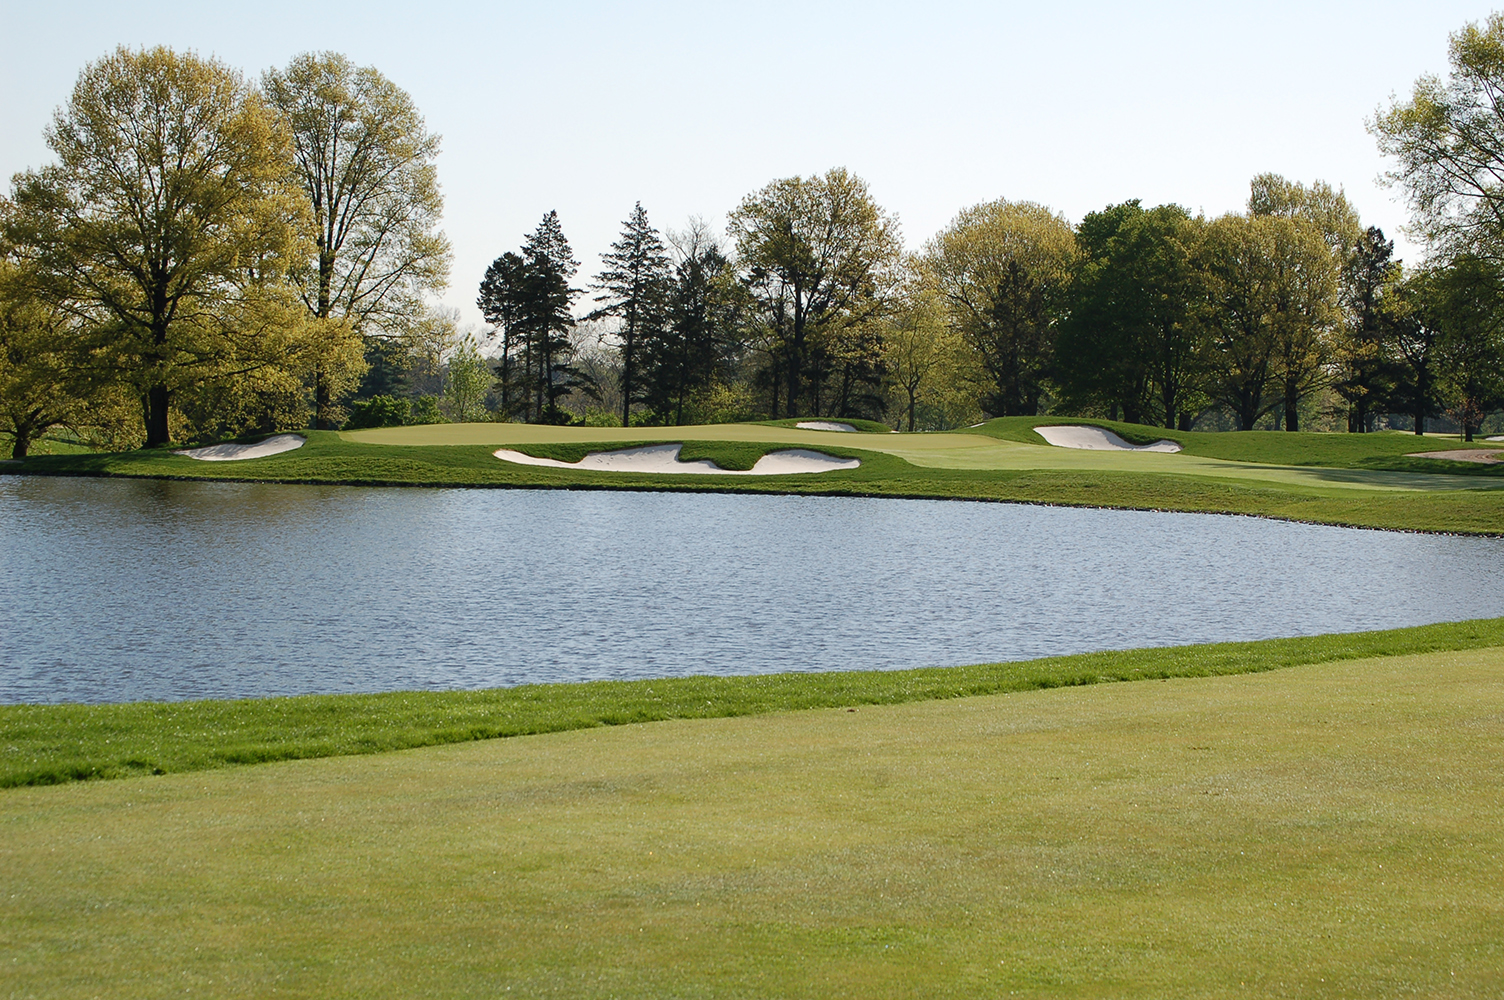 THE OHIO STATE UNIVERSITY GOLF CLUB – SCARLET COURSE